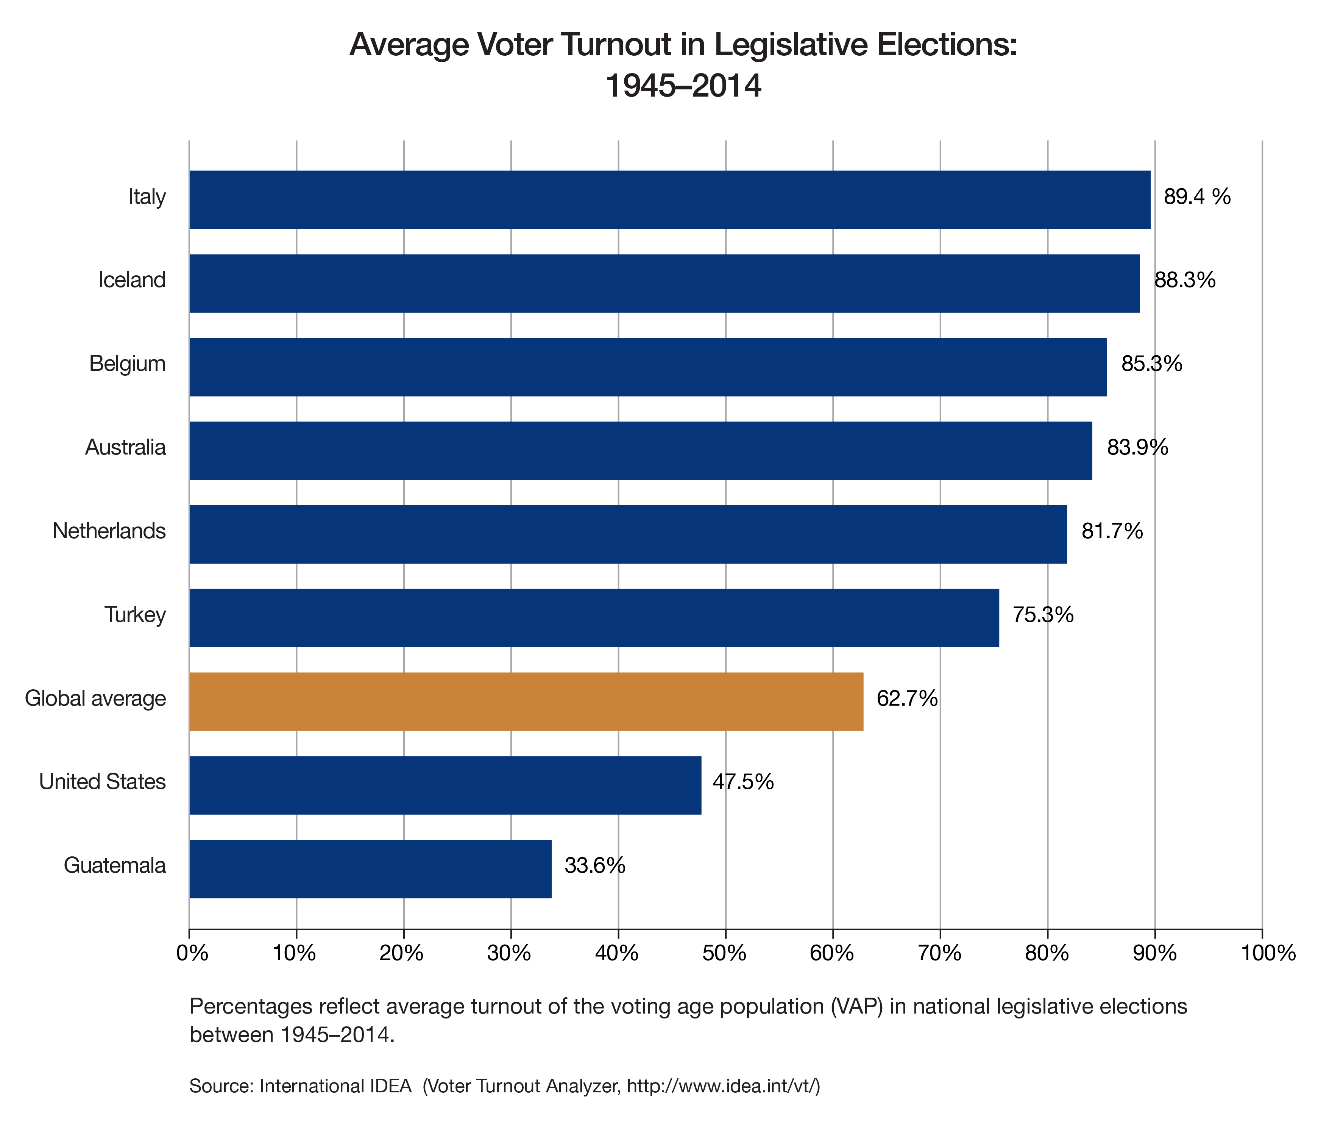 low voter turnout united states Introduction as the general election of 2004 approach-es, critics of american politics will decry low voter turnout in the united states they will.